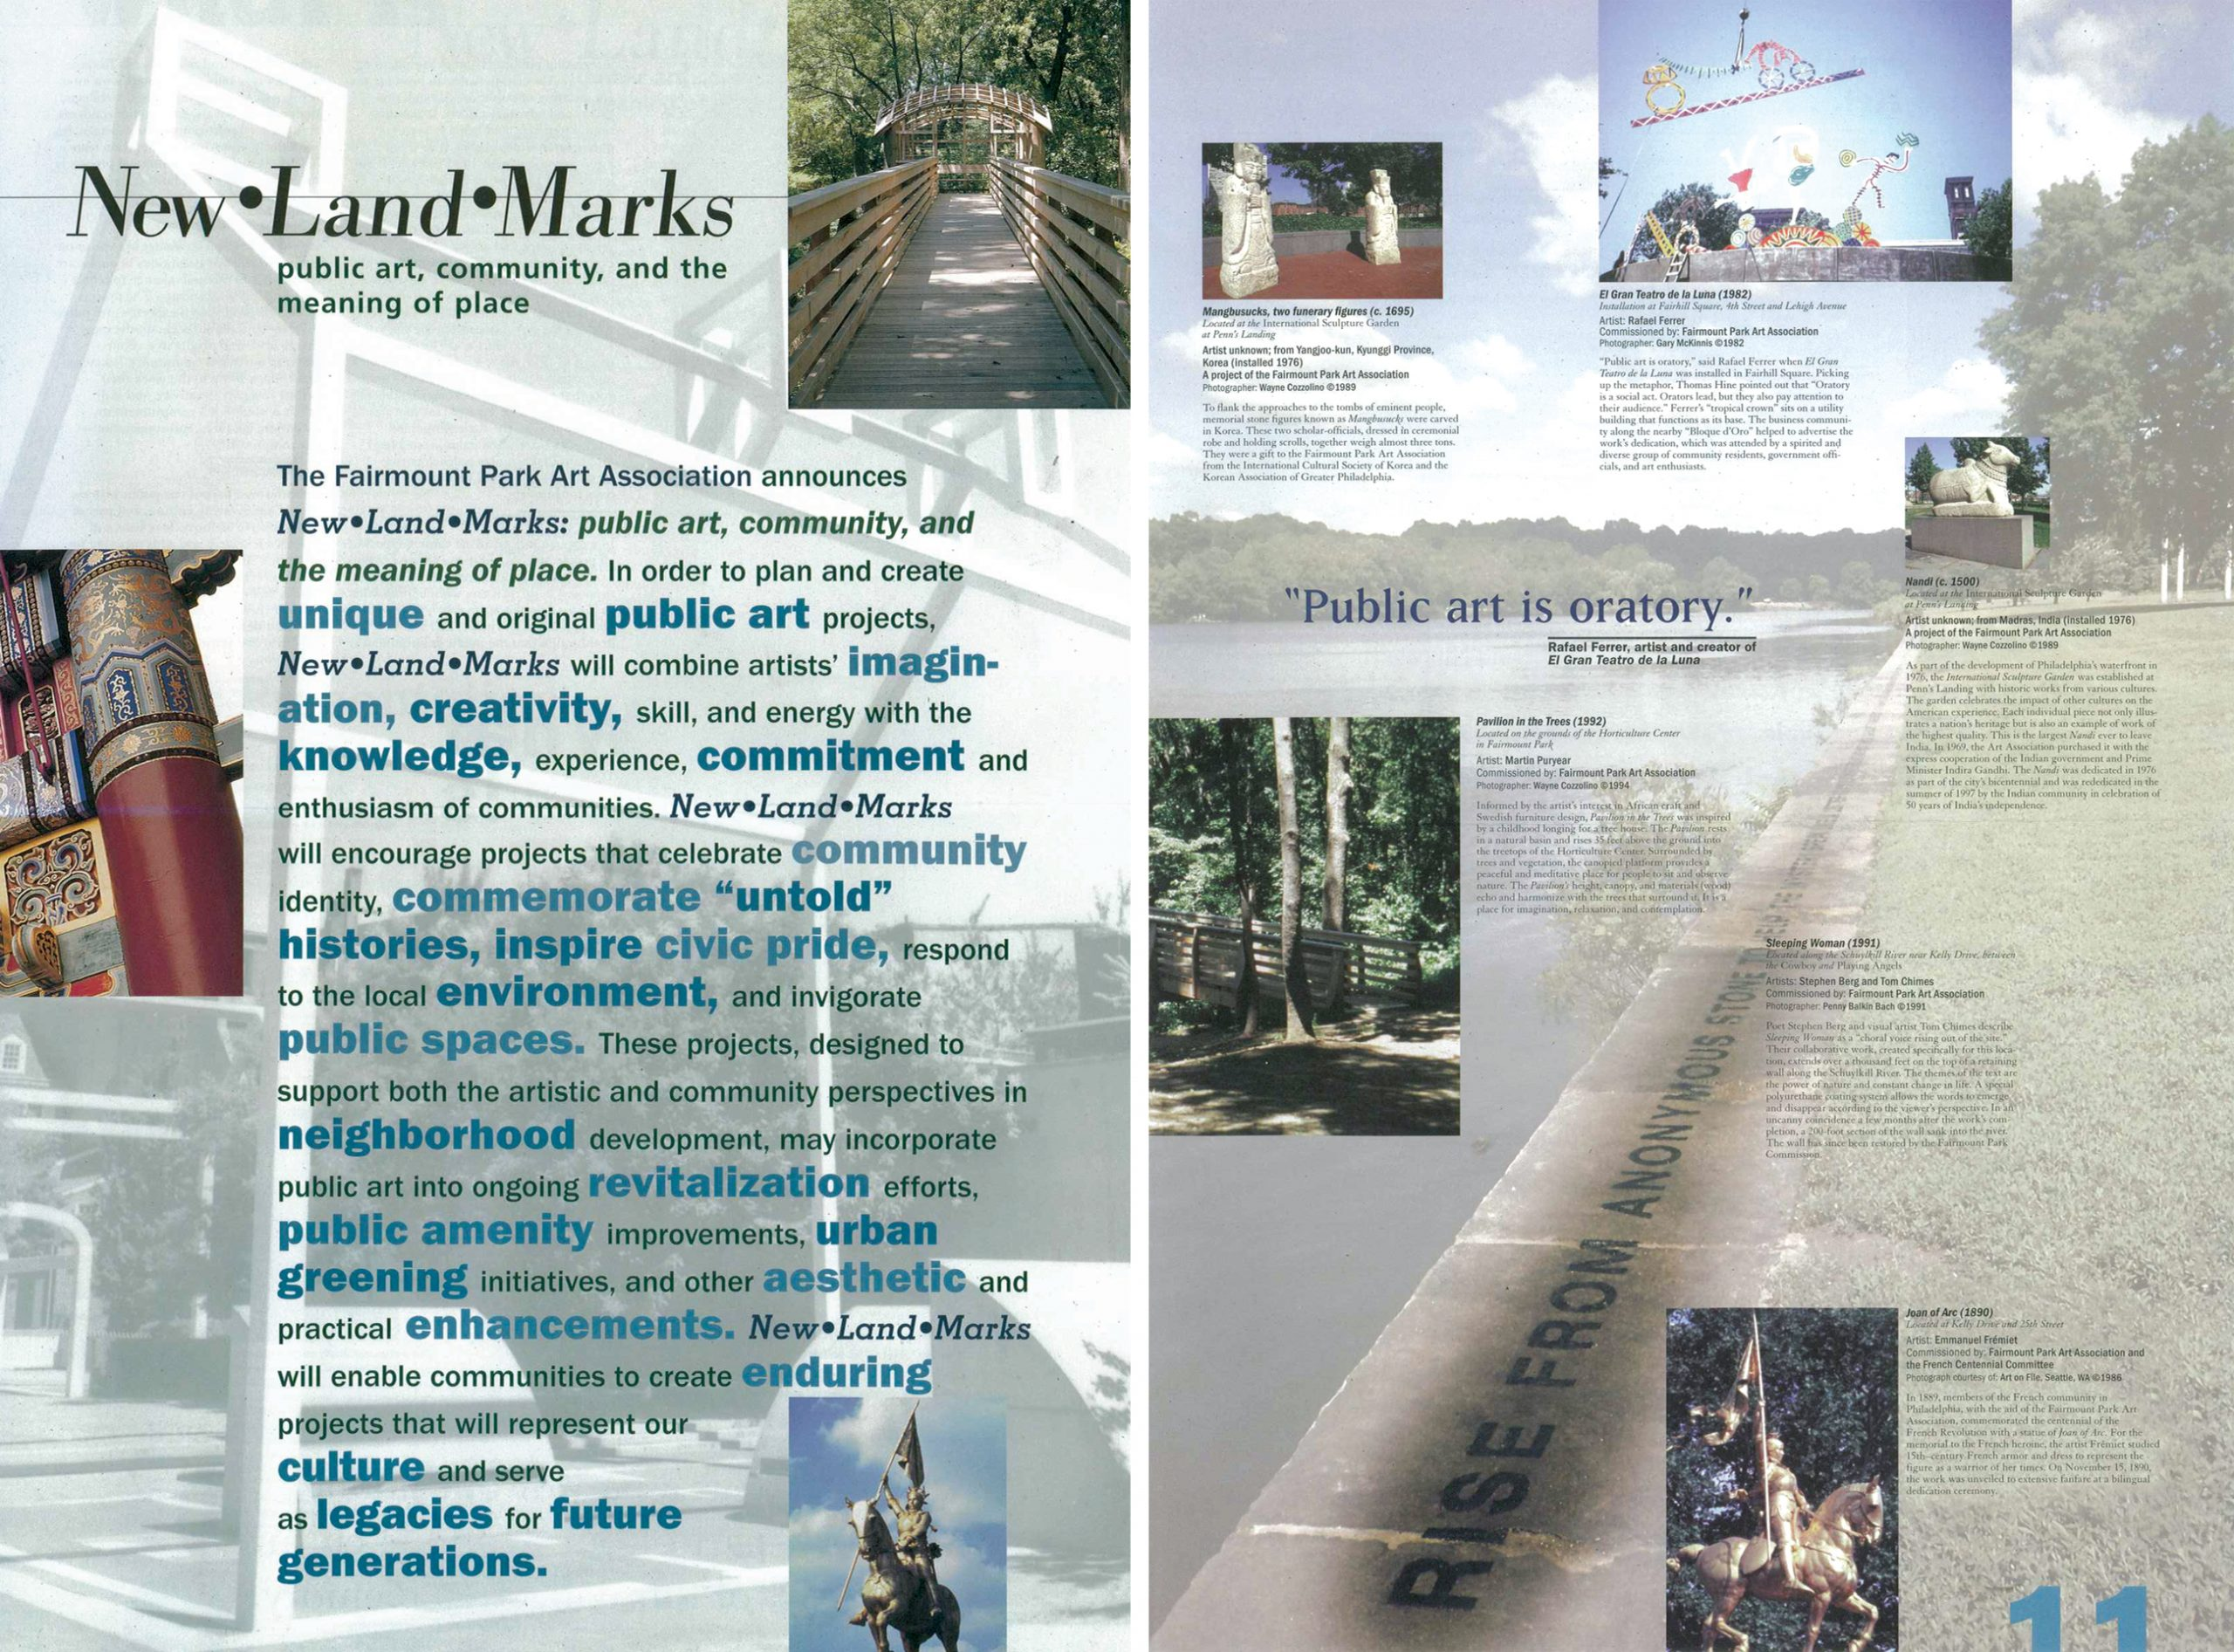 Color scan of two pages from the brochure for the New Land Marcks program